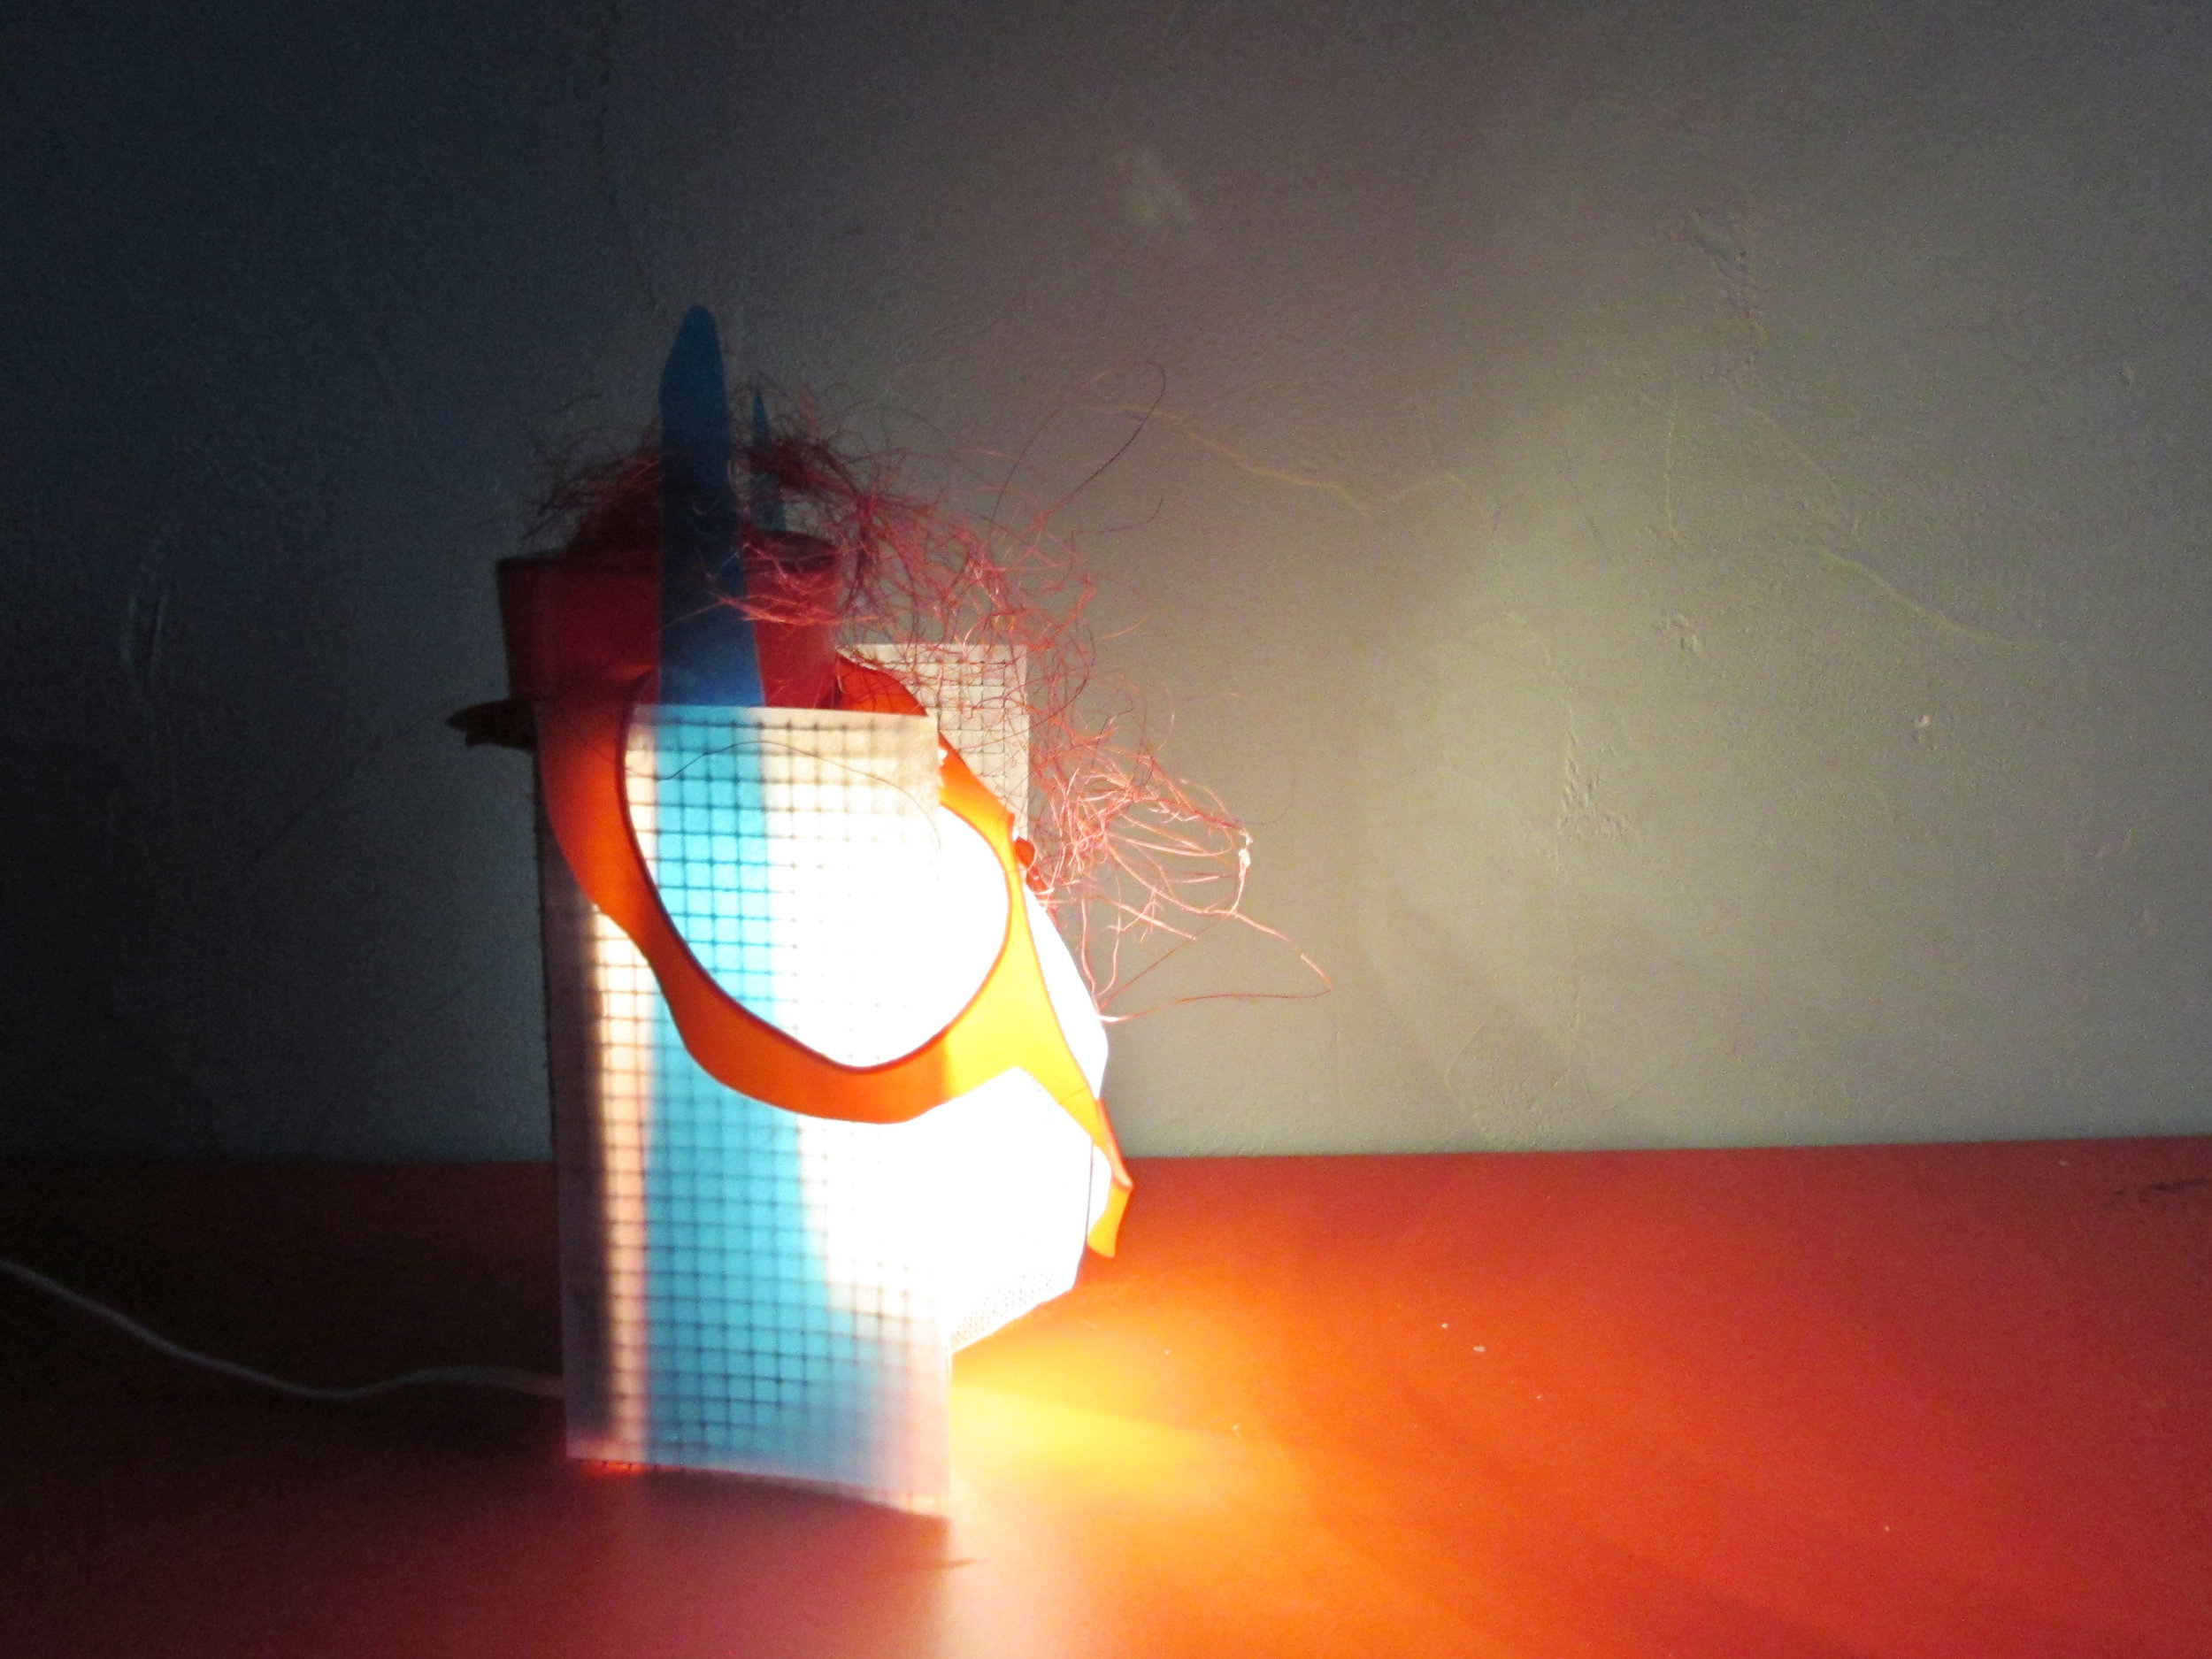 #1minuteLamp by Maura